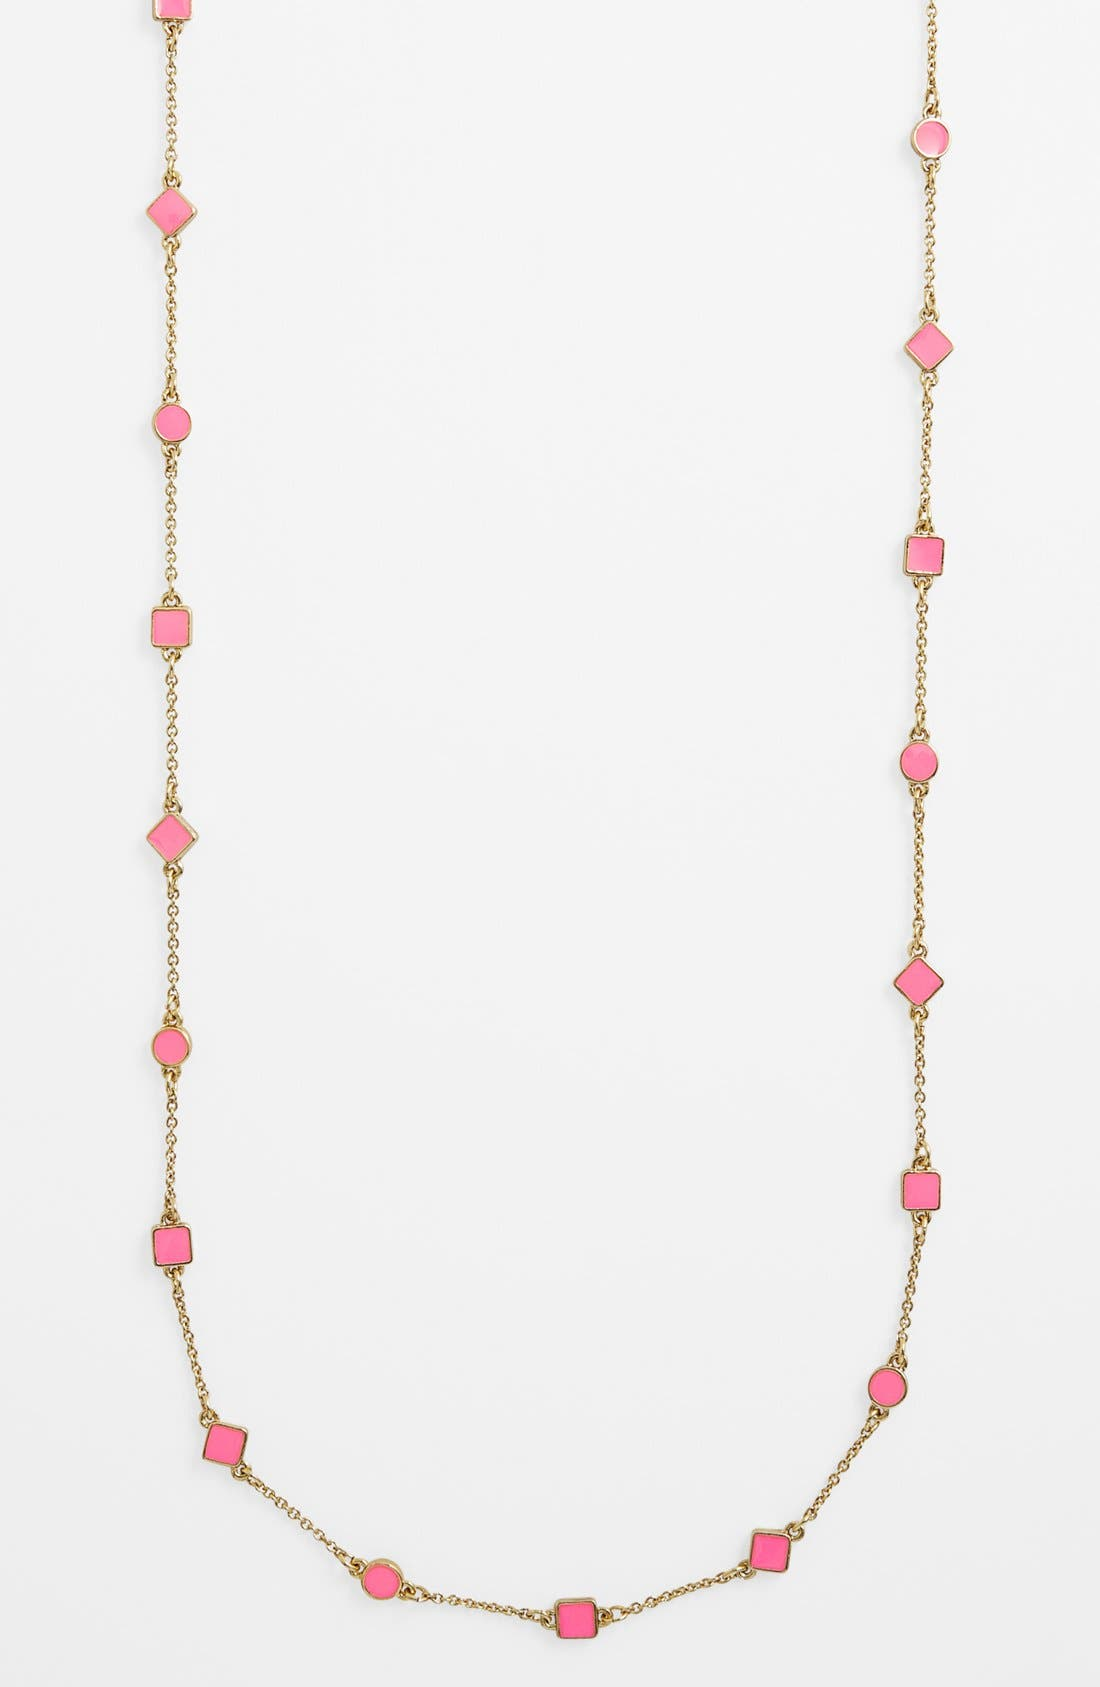 Main Image - kate spade new york 'cubetti' extra long station necklace